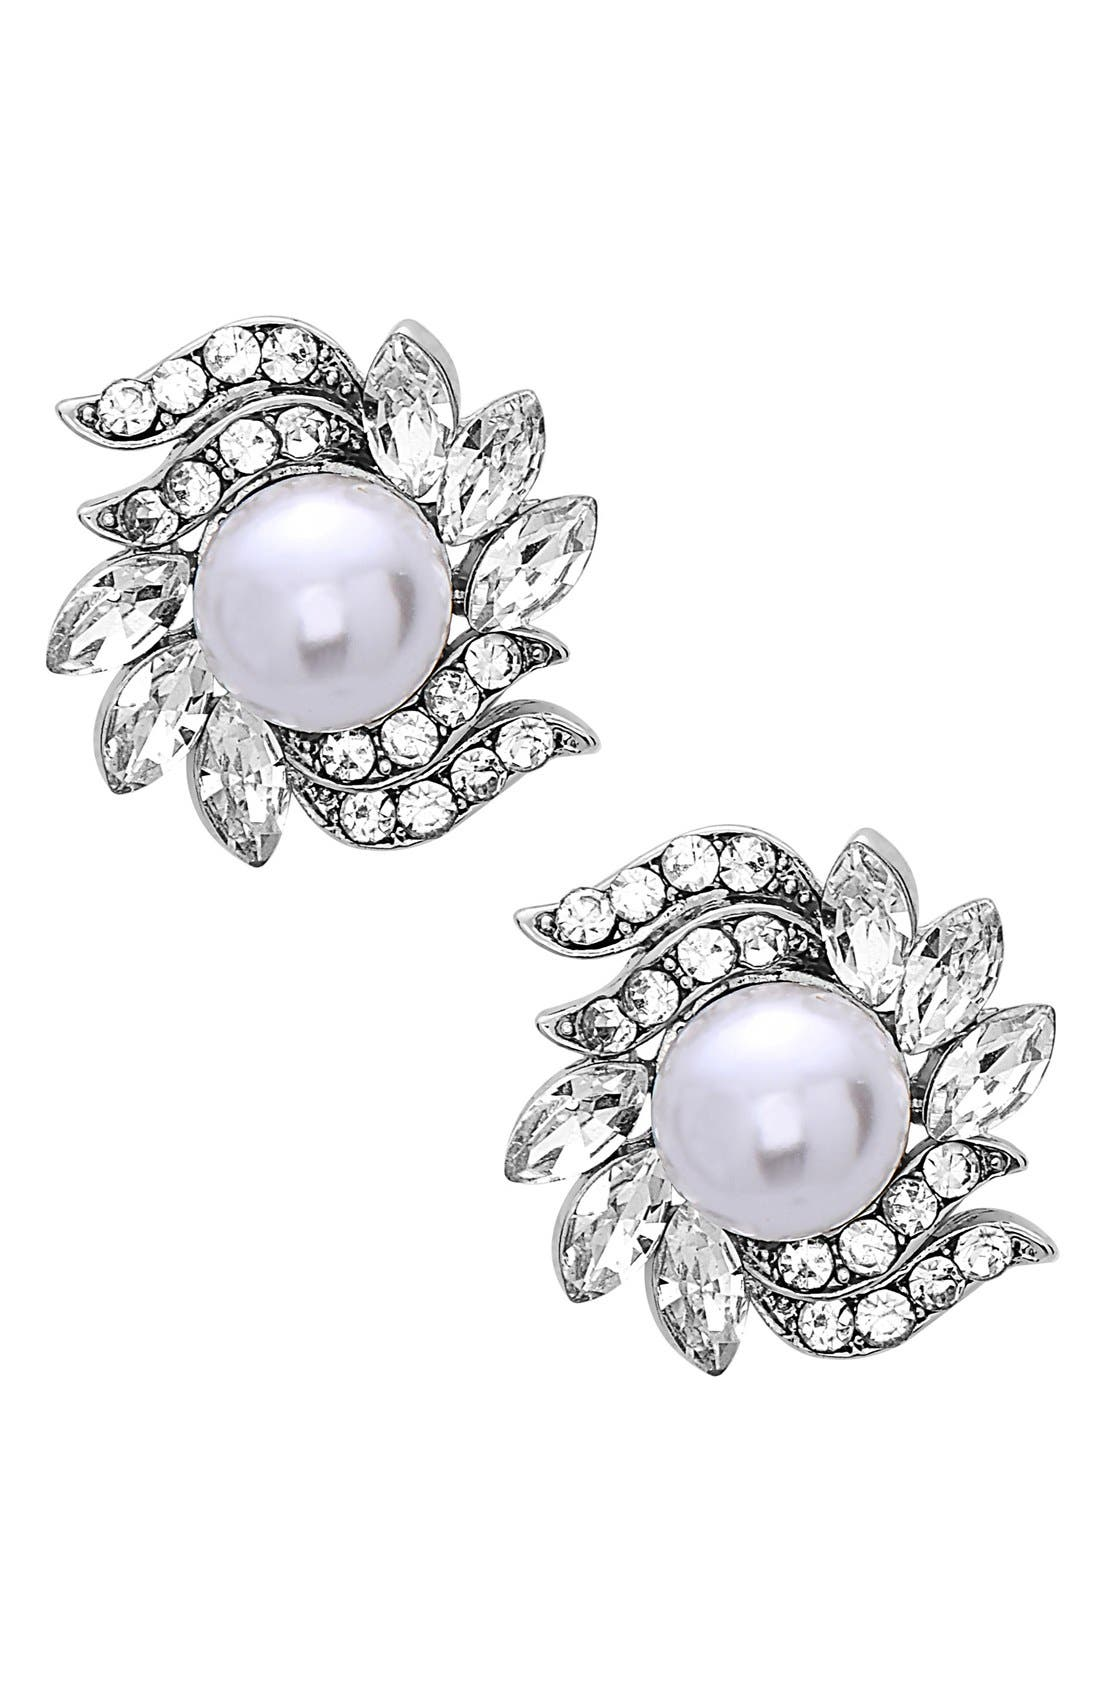 Crystal & Faux Pearl Floral Stud Earrings,                             Main thumbnail 1, color,